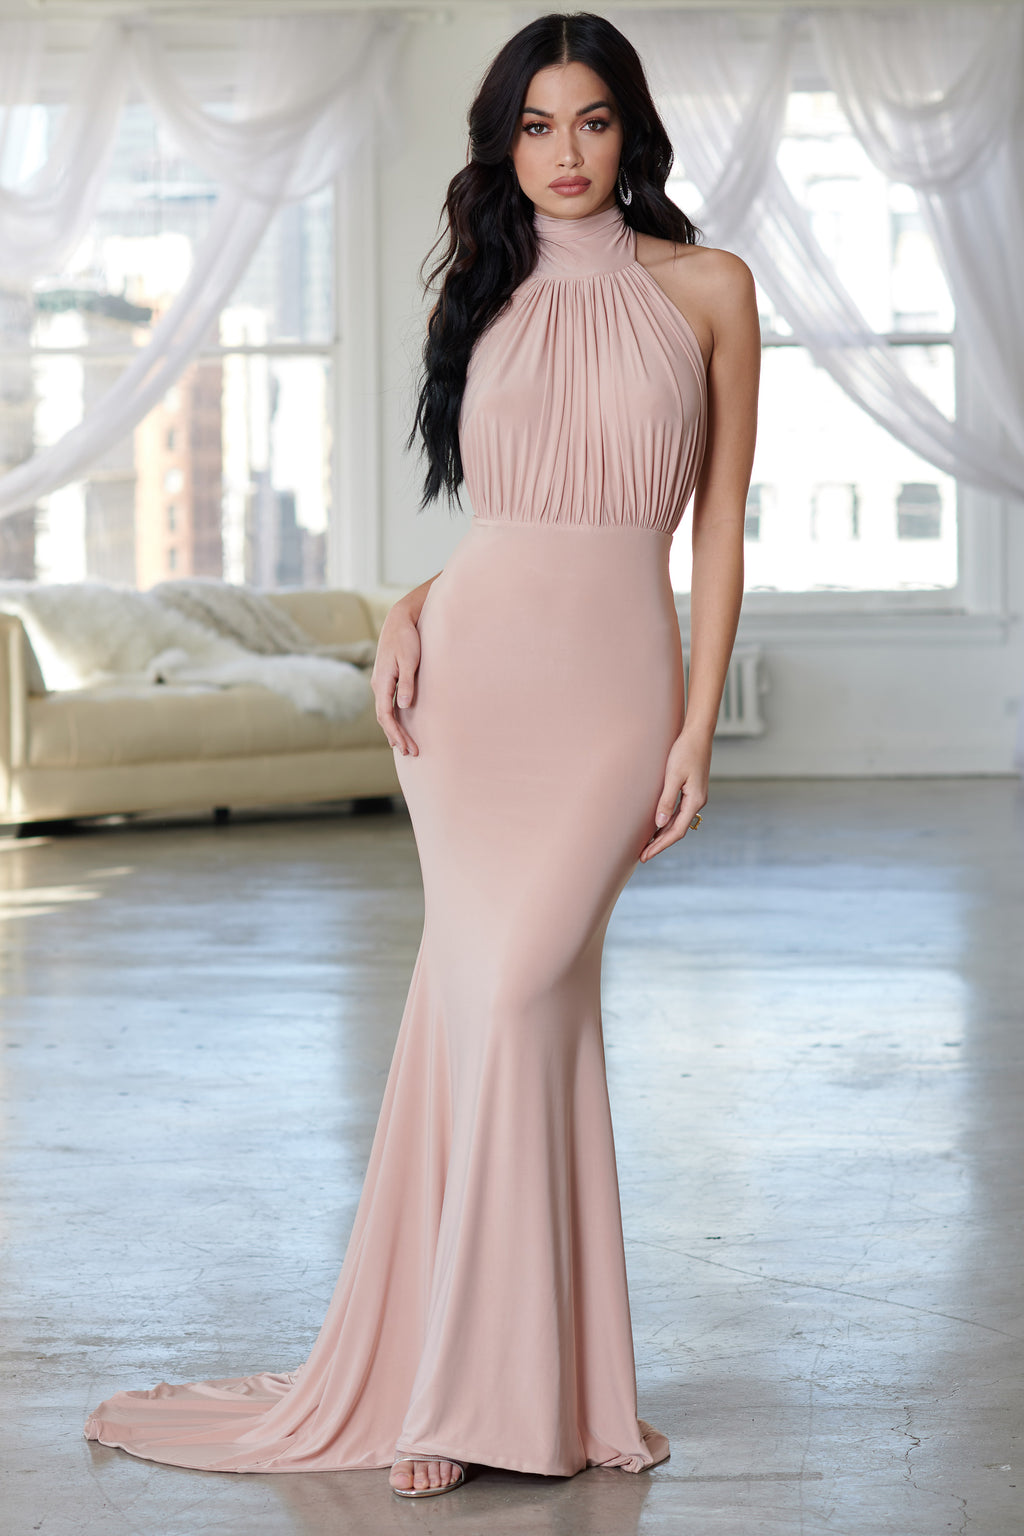 Nude Backless Halterneck Fishtail Maxi Dress